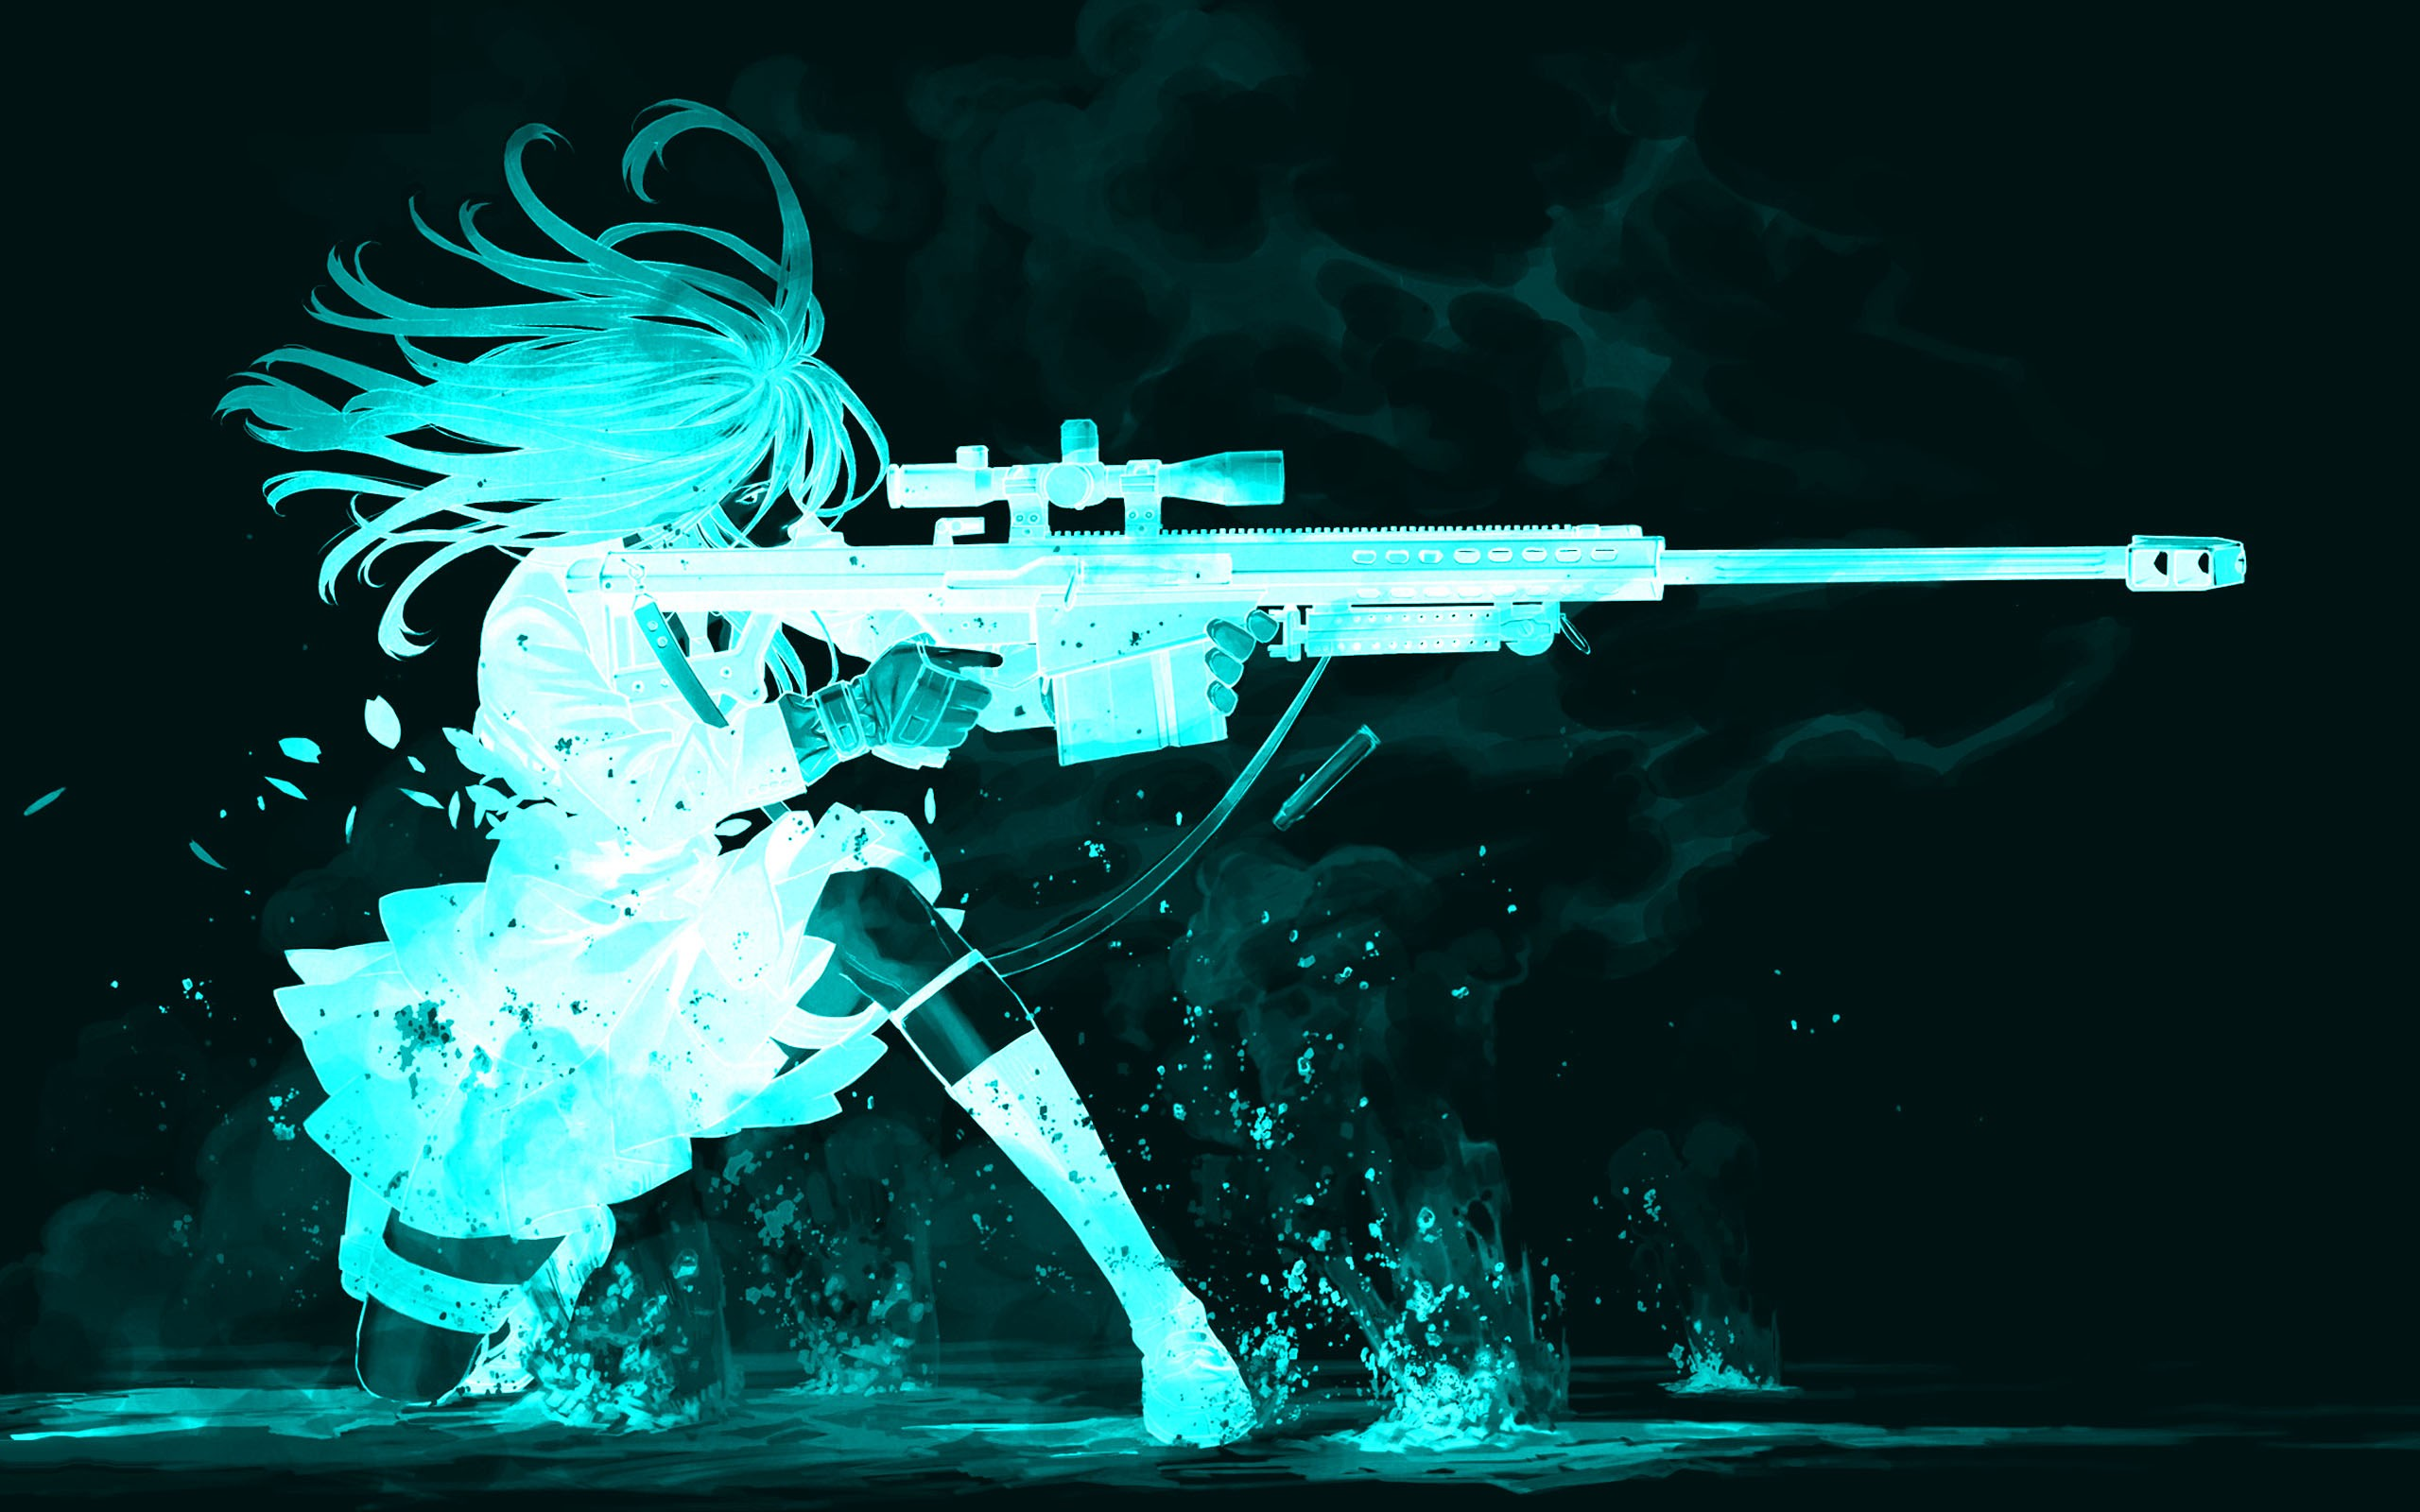 60 cool anime backgrounds download free cool full hd - Blue anime wallpaper ...